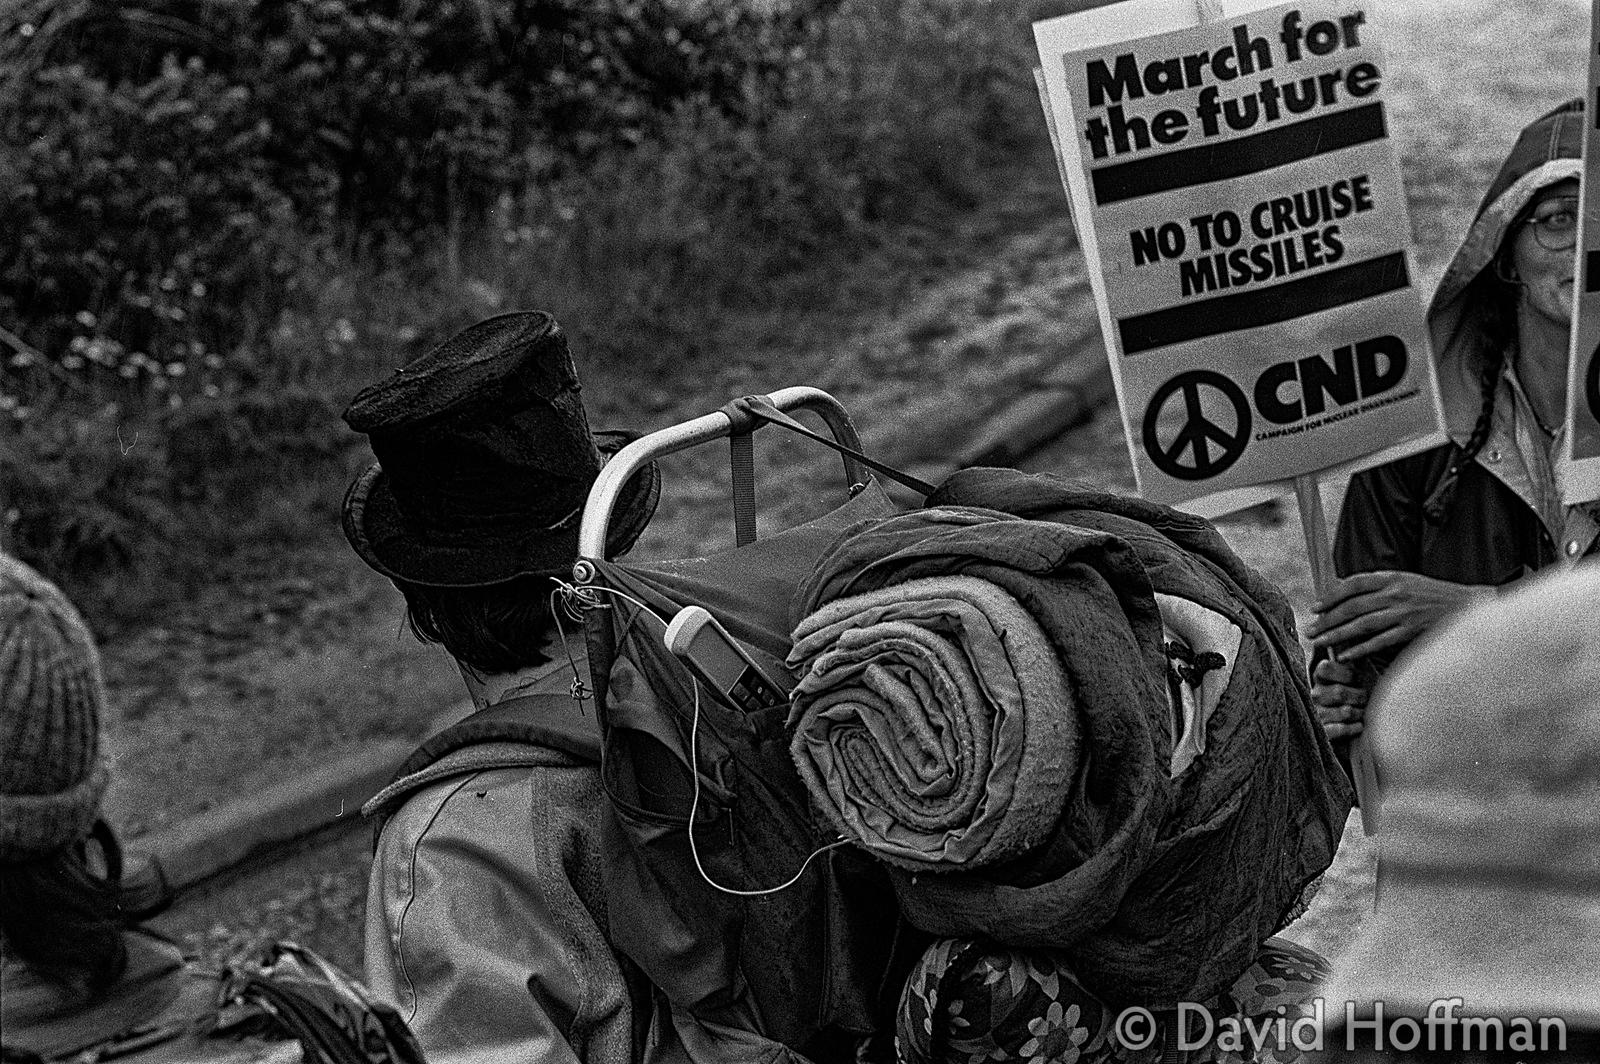 N75-11A CND March for the Future 1981